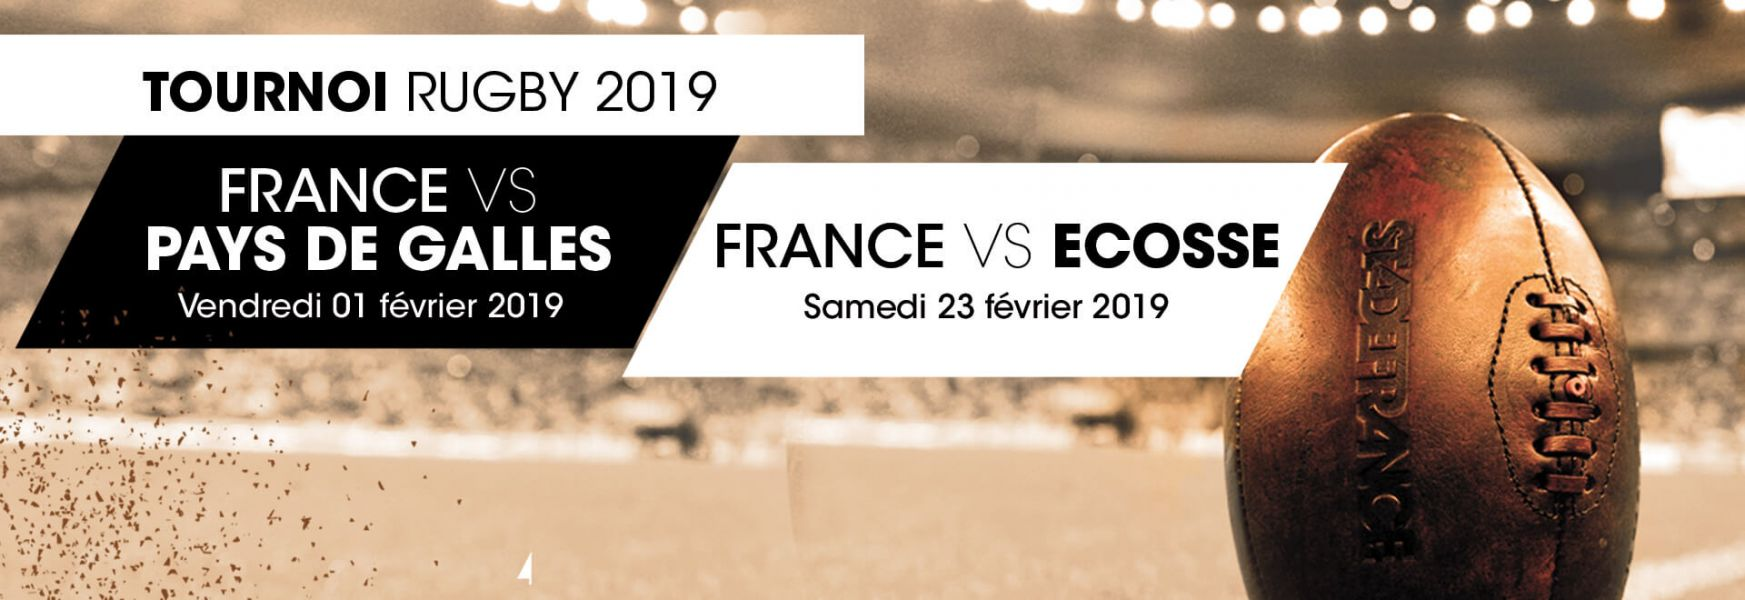 Tournoi rugby 2019 France vs Pays de Galles le 01/02/2019 et France vs Ecosse le 23/02/2019